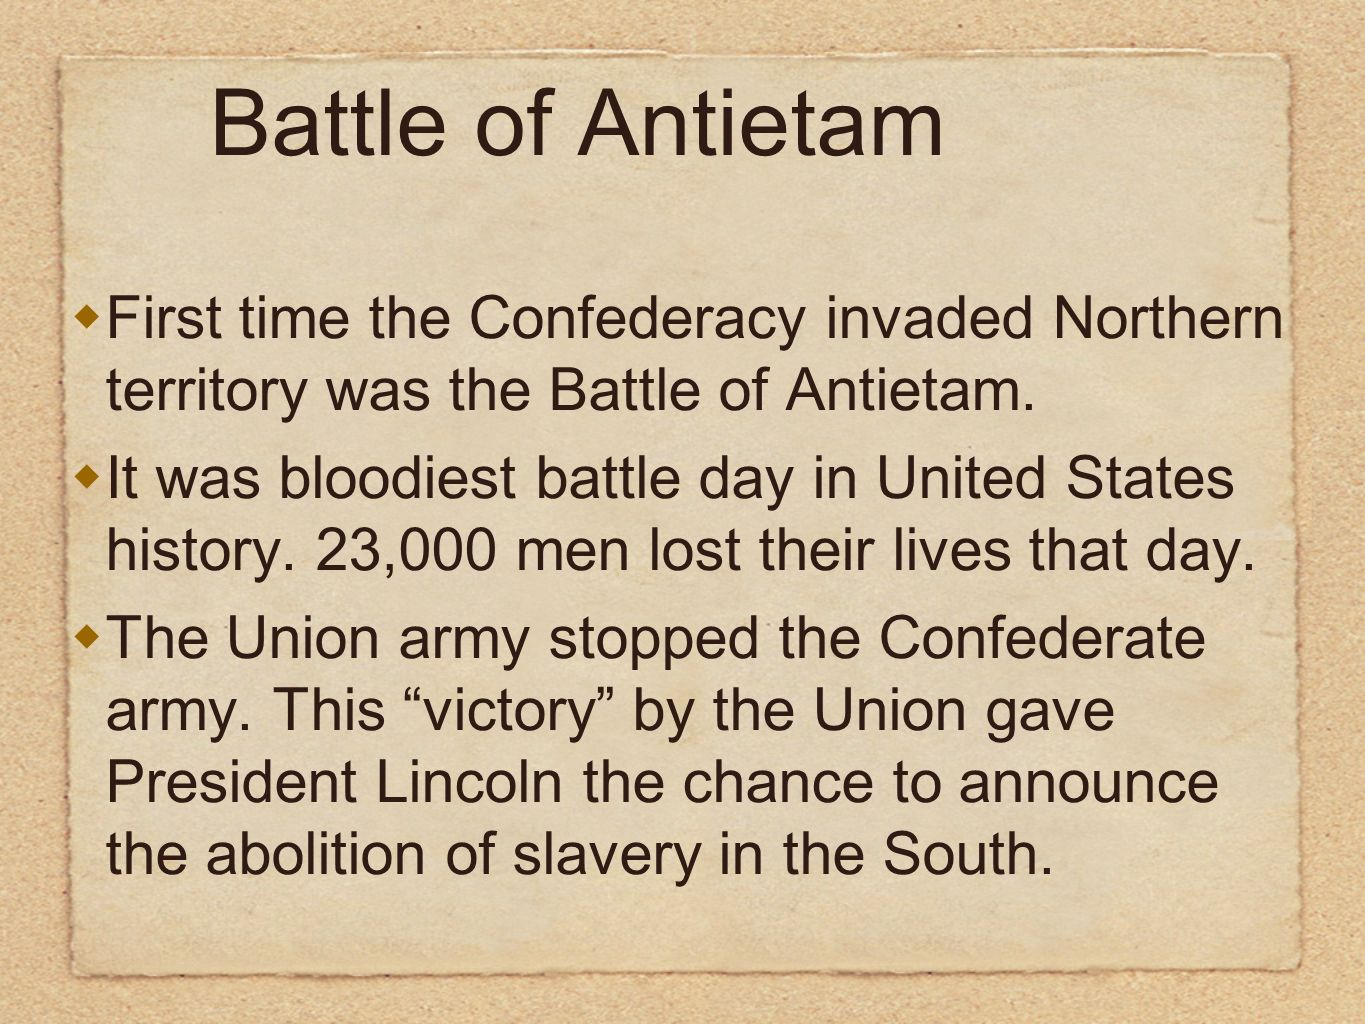 Battle of Antietam First time the Confederacy invaded Northern territory was the Battle of Antietam.